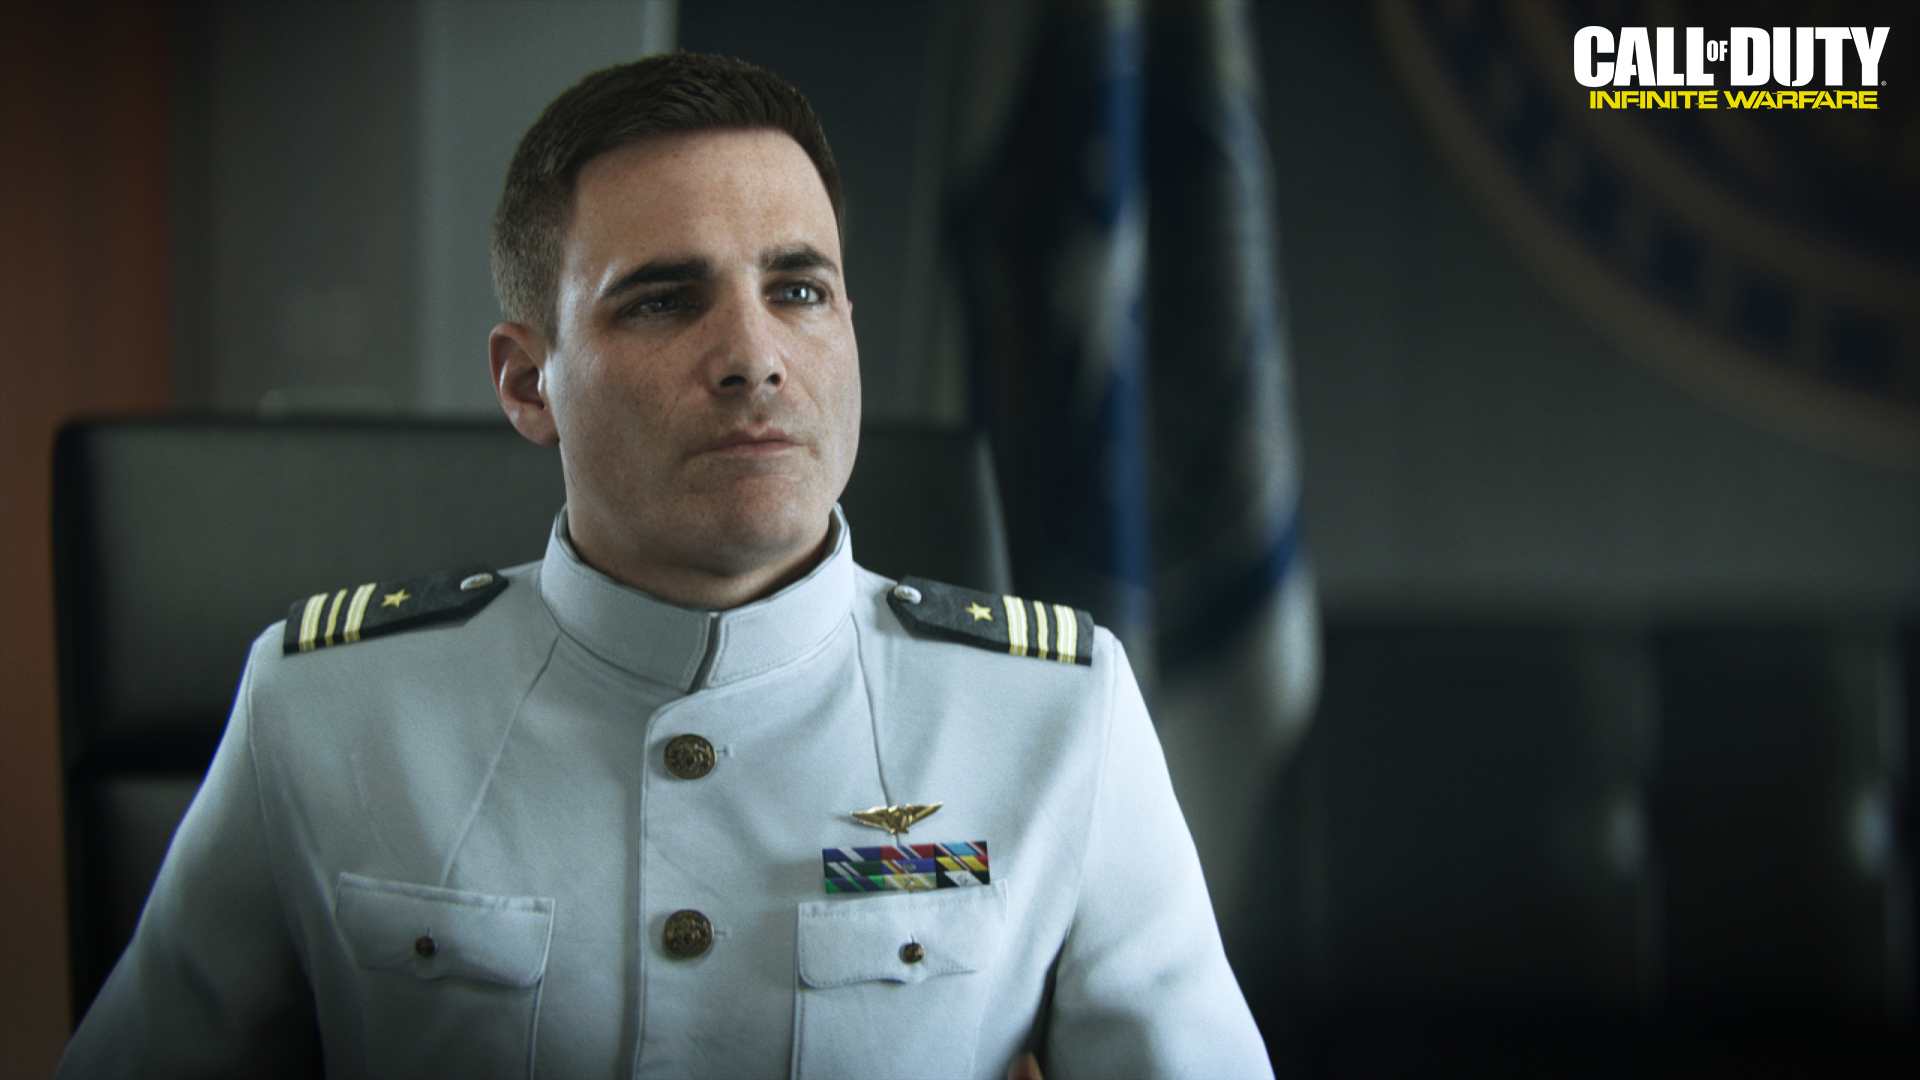 Captain Reyes Trailer for Call of Duty: Infinite Warfare